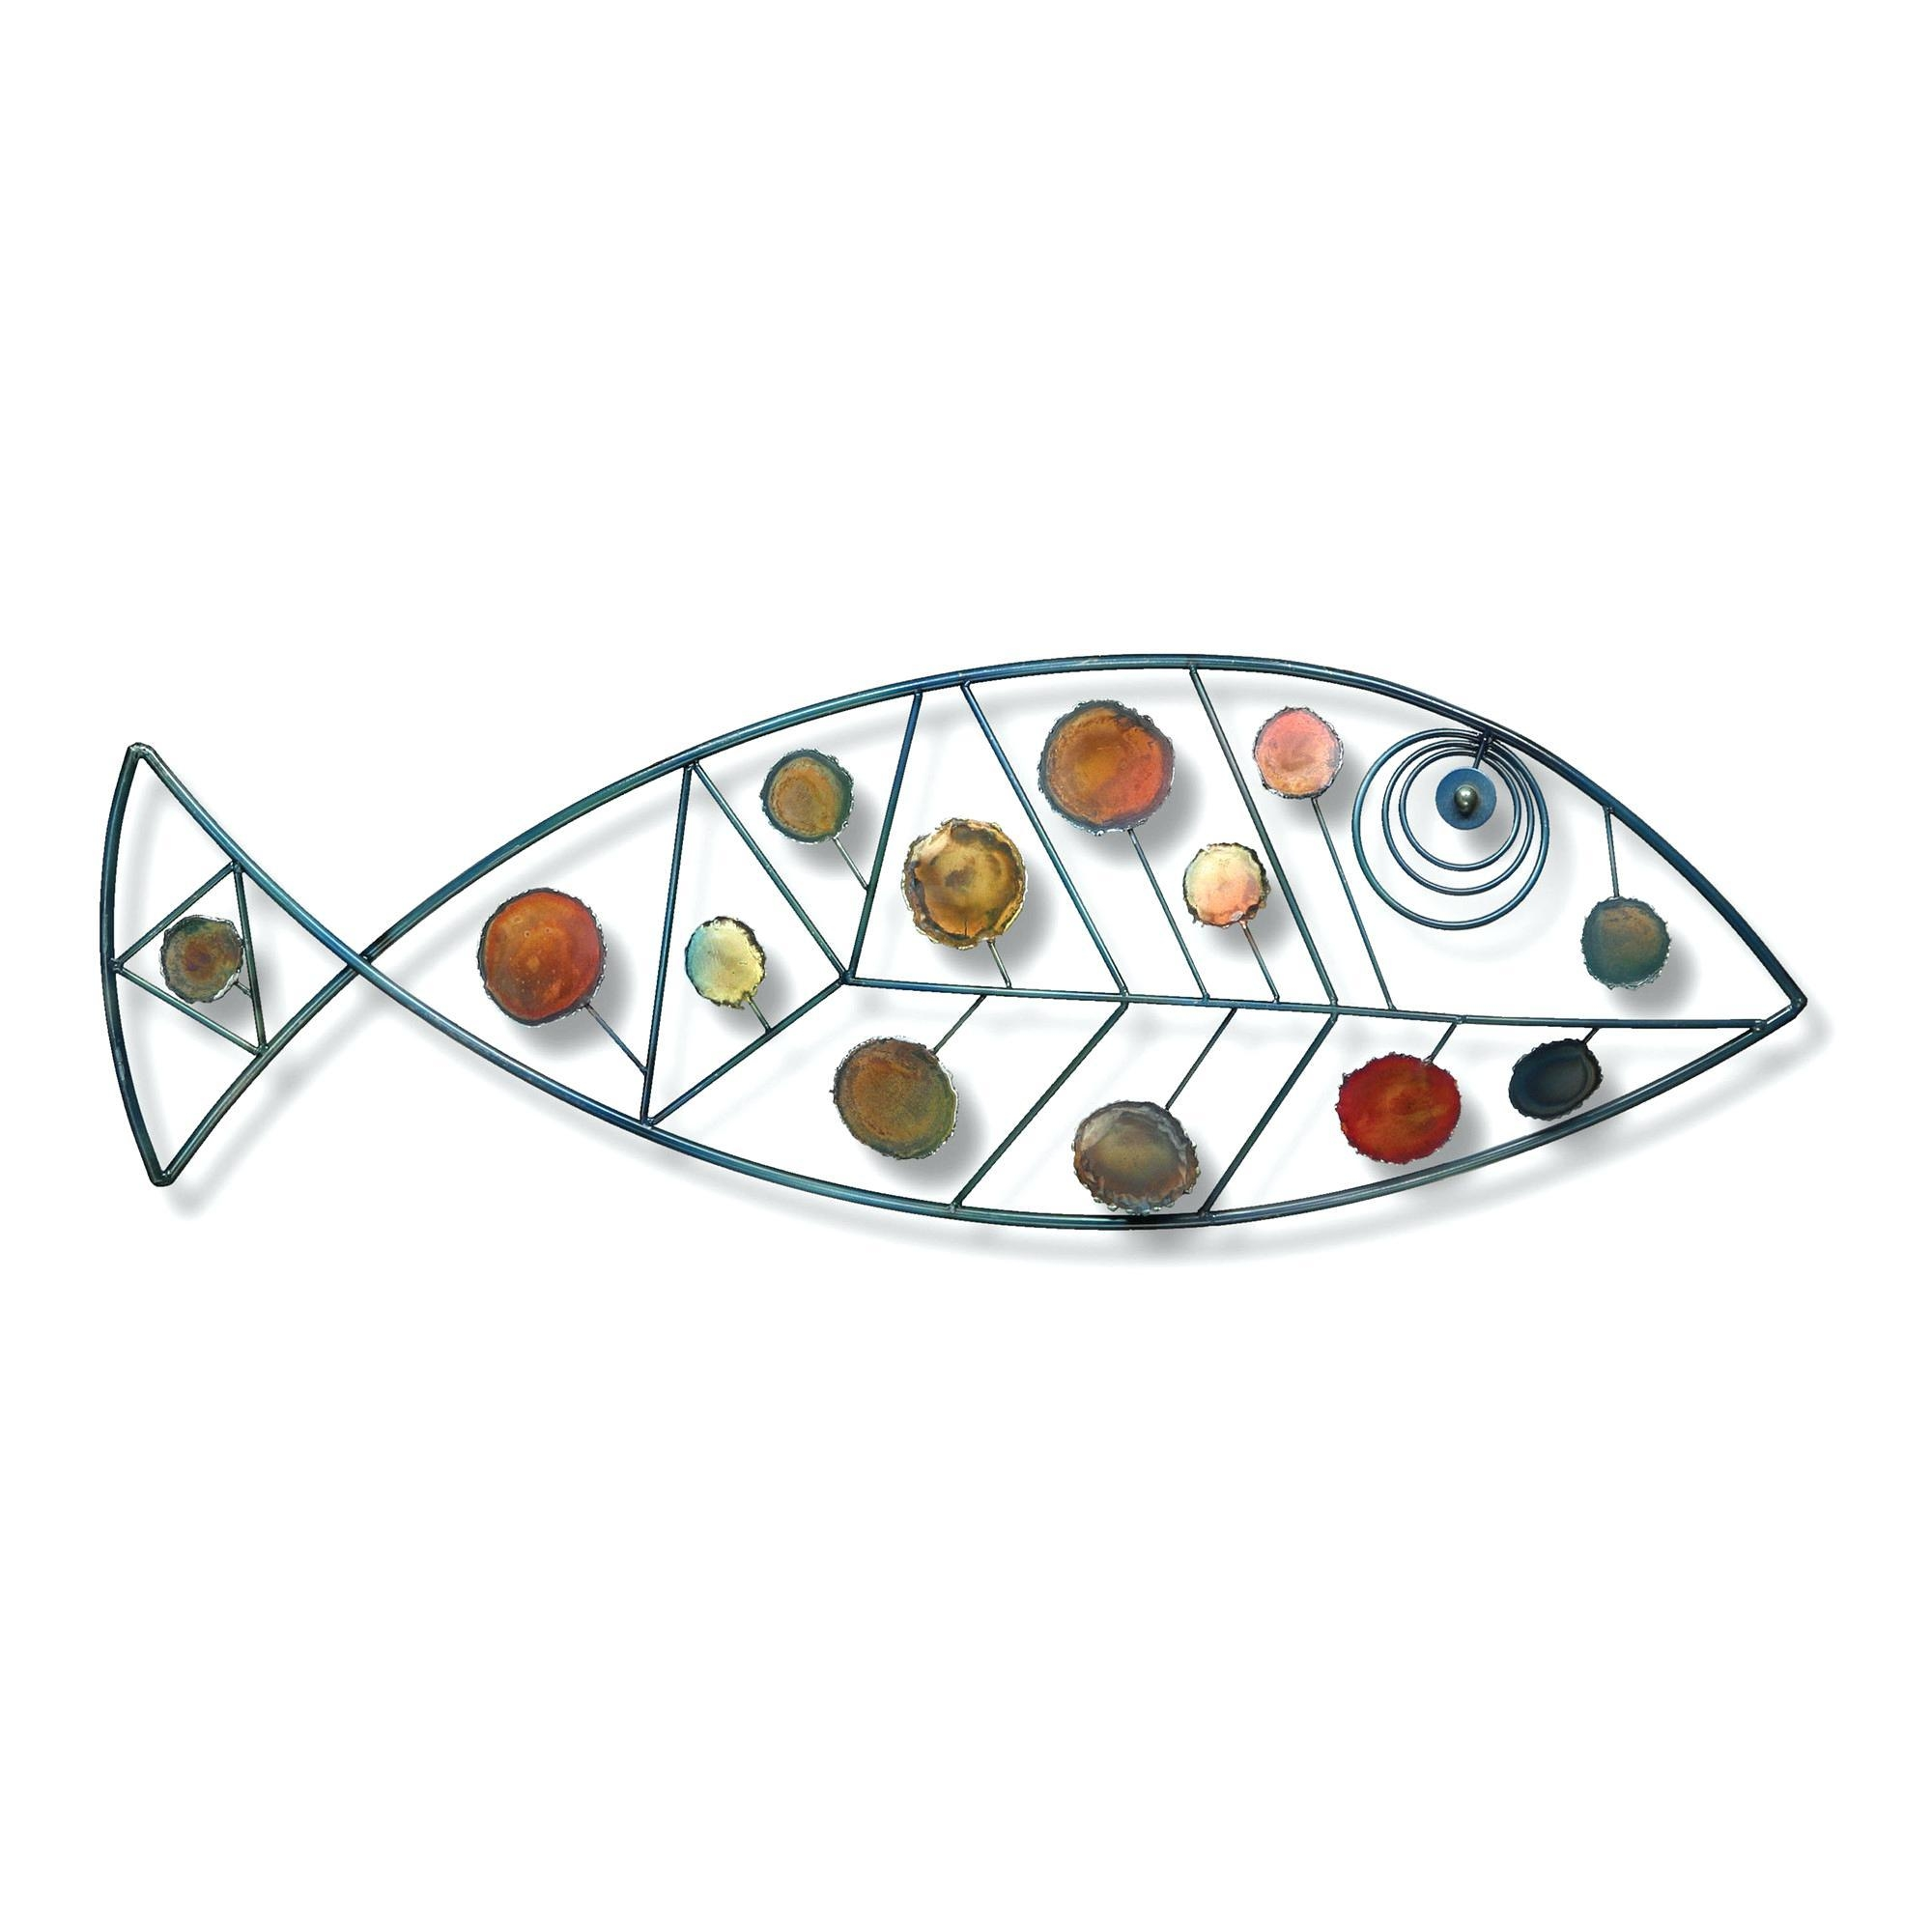 Wall Ideas : Large Wooden Fish Wall Art Ceramic Fish Wall Art Nz Regarding Metal School Of Fish Wall Art (Image 17 of 20)